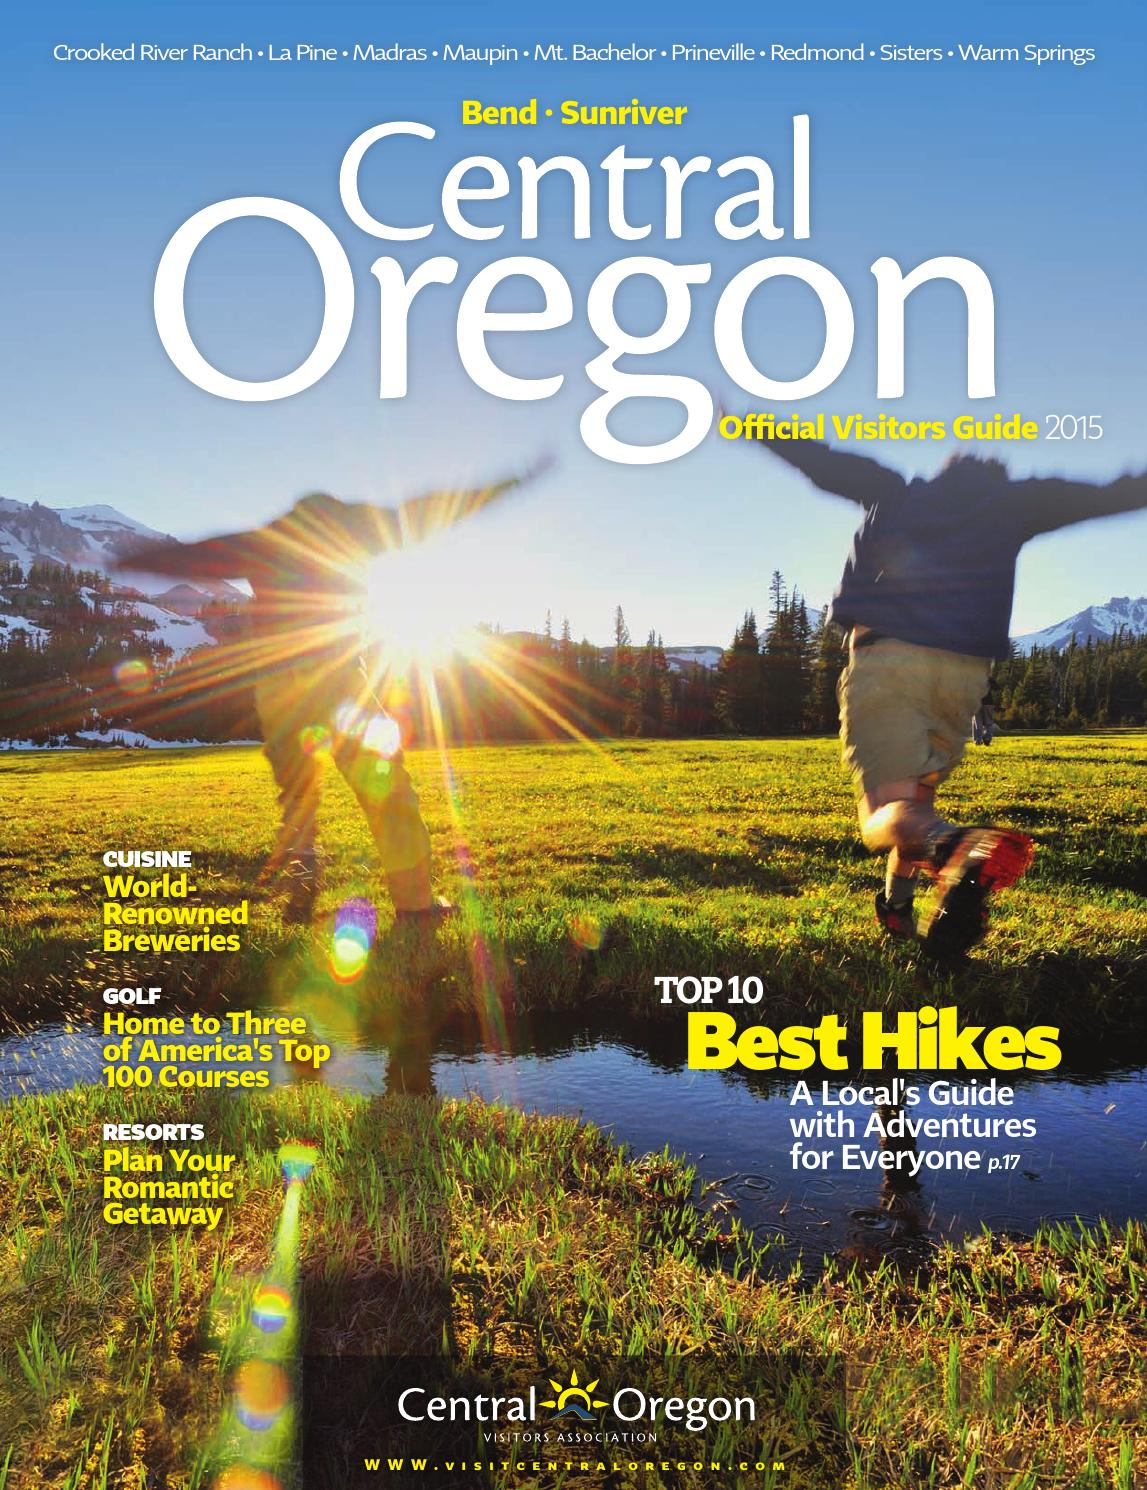 2015 Official Visitors Guide for Central Oregon by Central Oregon Visitors  Association - issuu